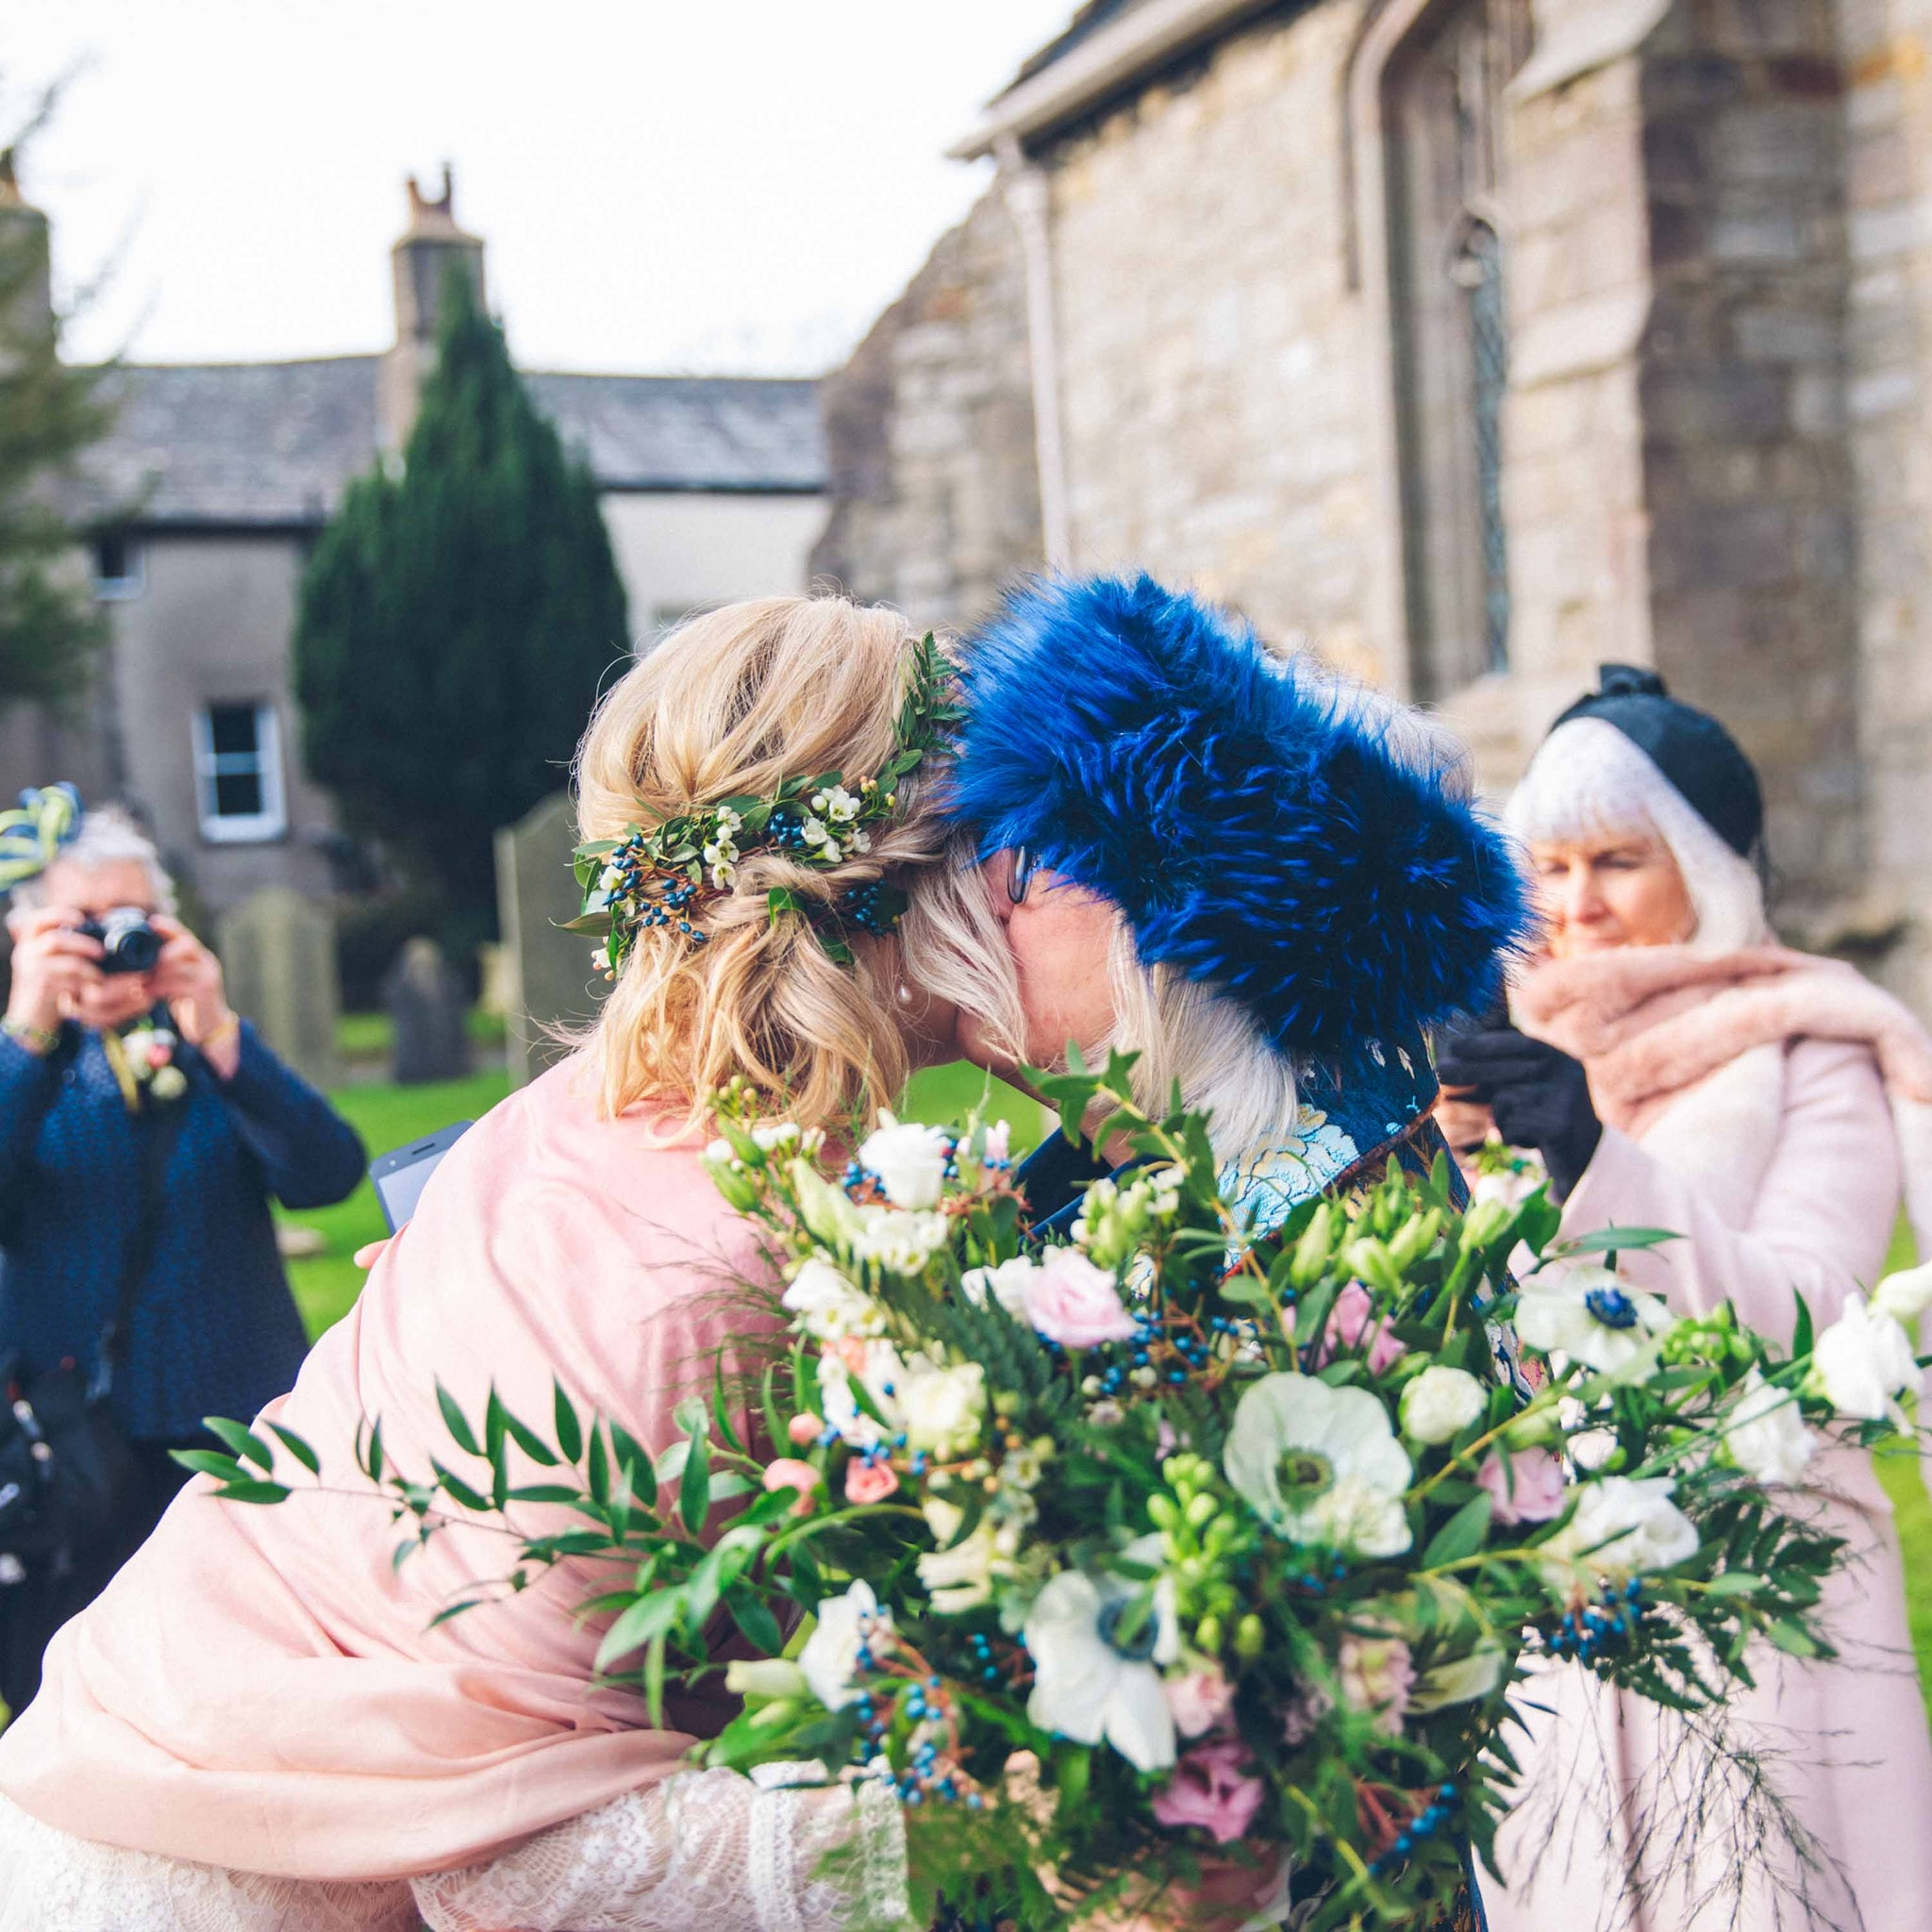 embrace at wedding with bouquet of flowers